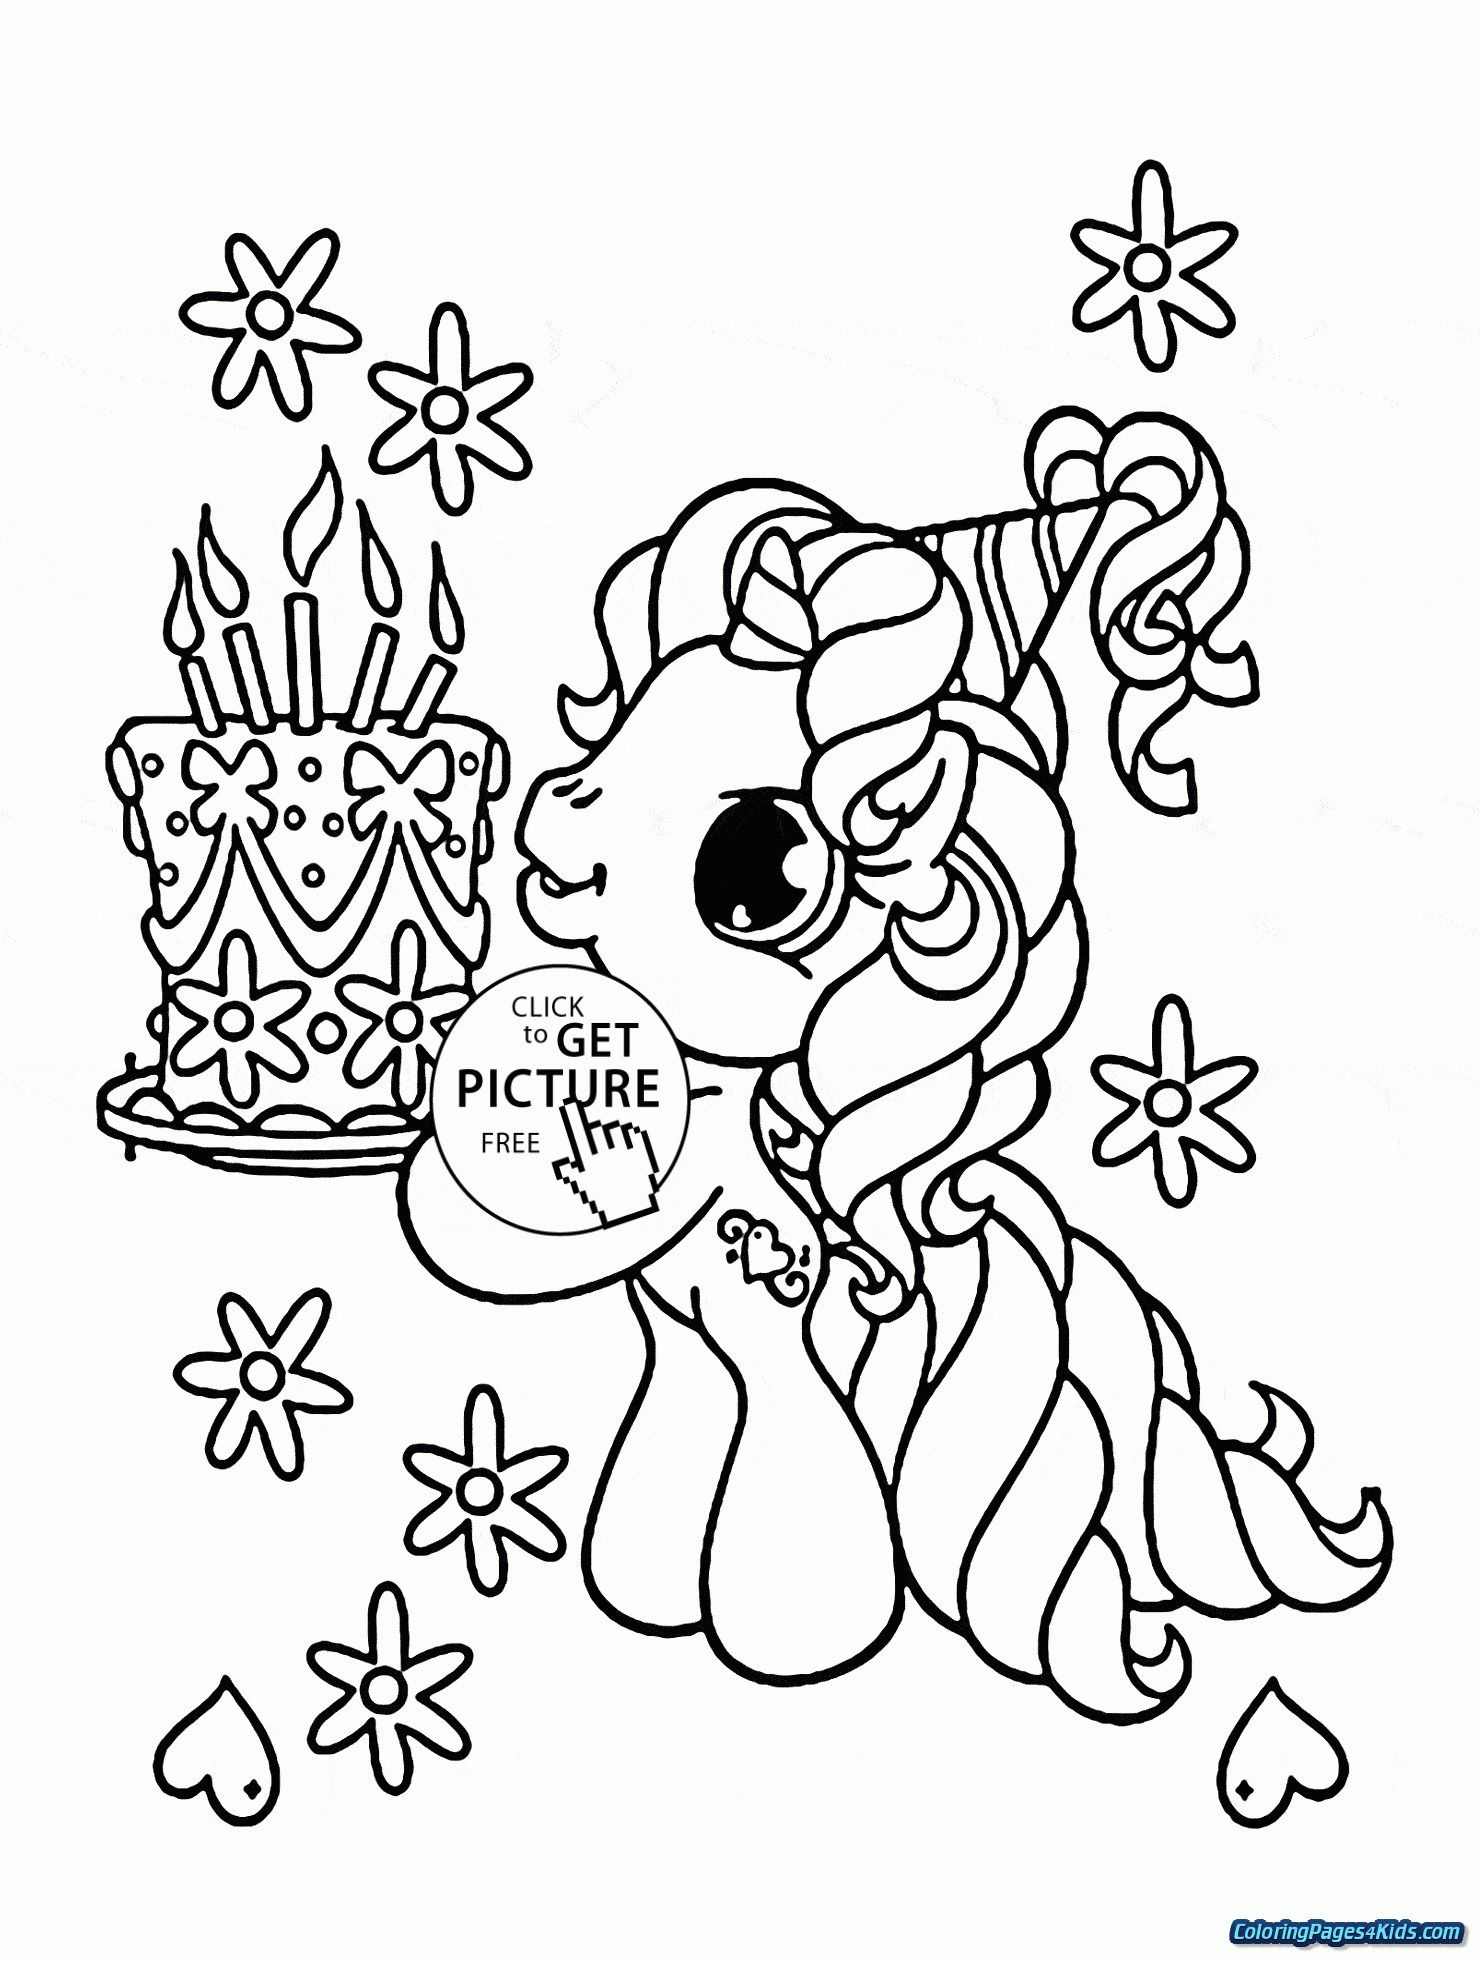 30 Marvelous Photo Of Birthday Cake Coloring Pages Unicorn